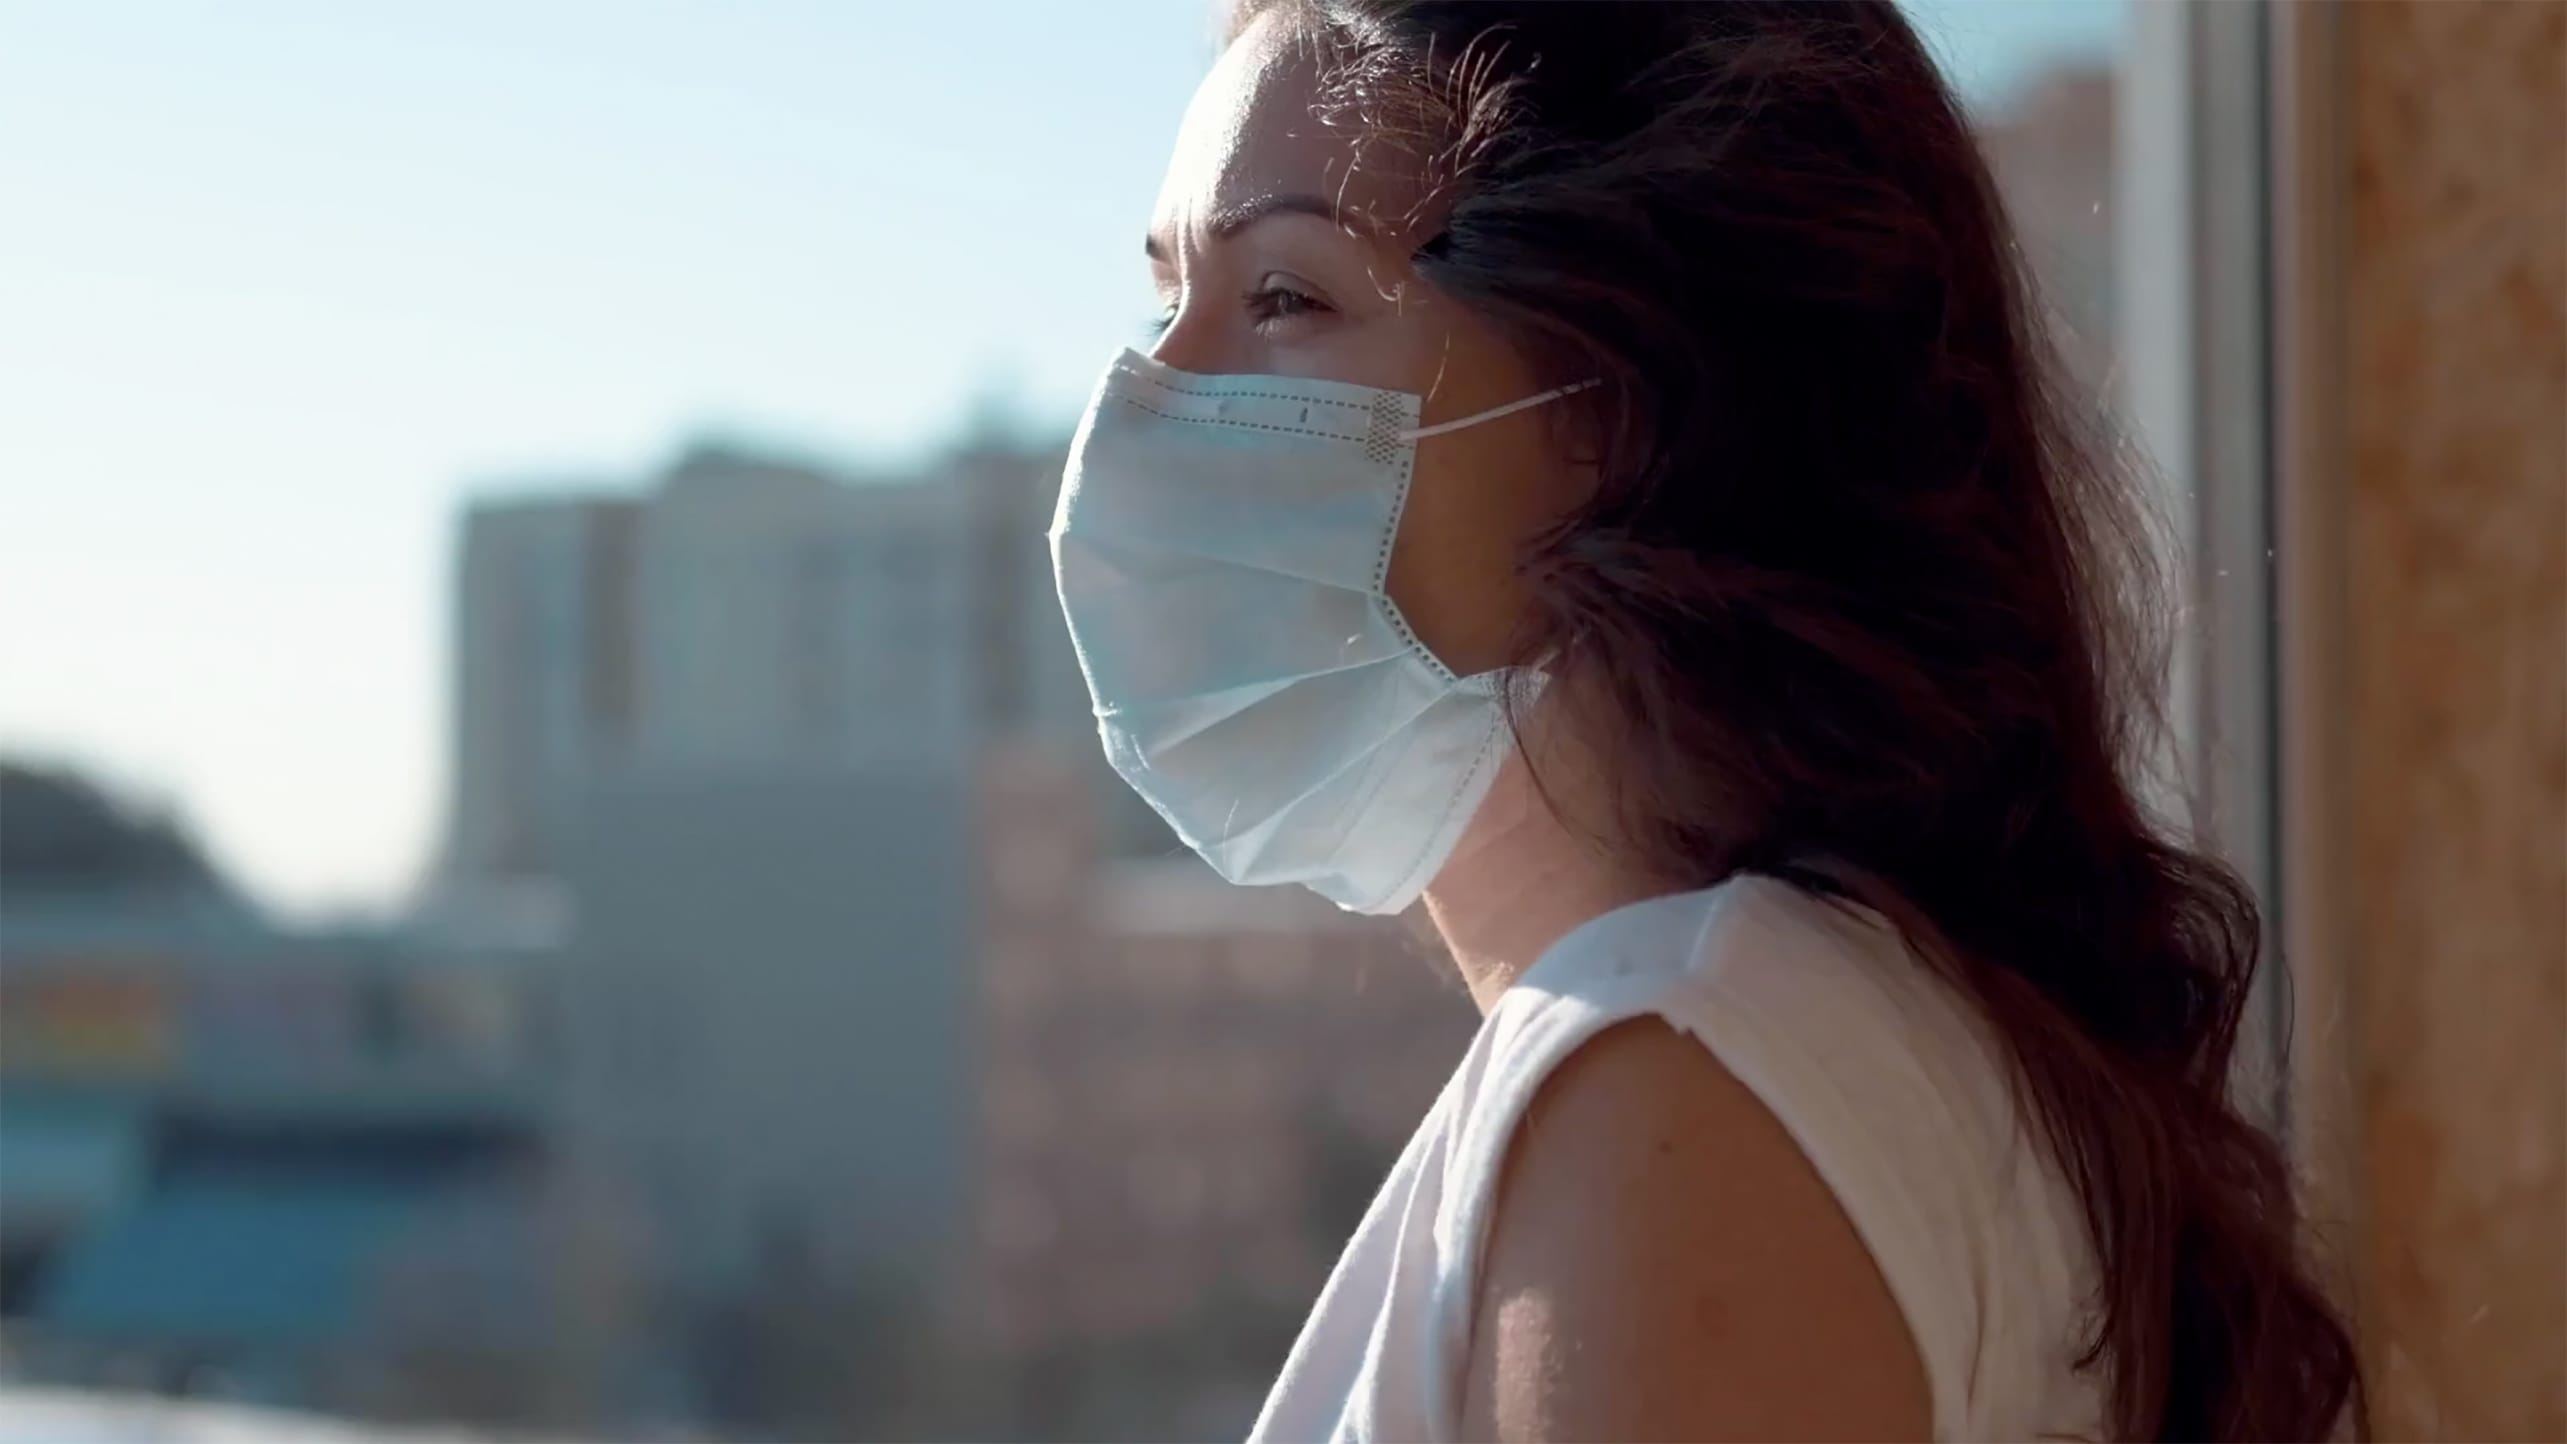 A woman wears a mask alone in her apartment during the COVID-19 pandemic.